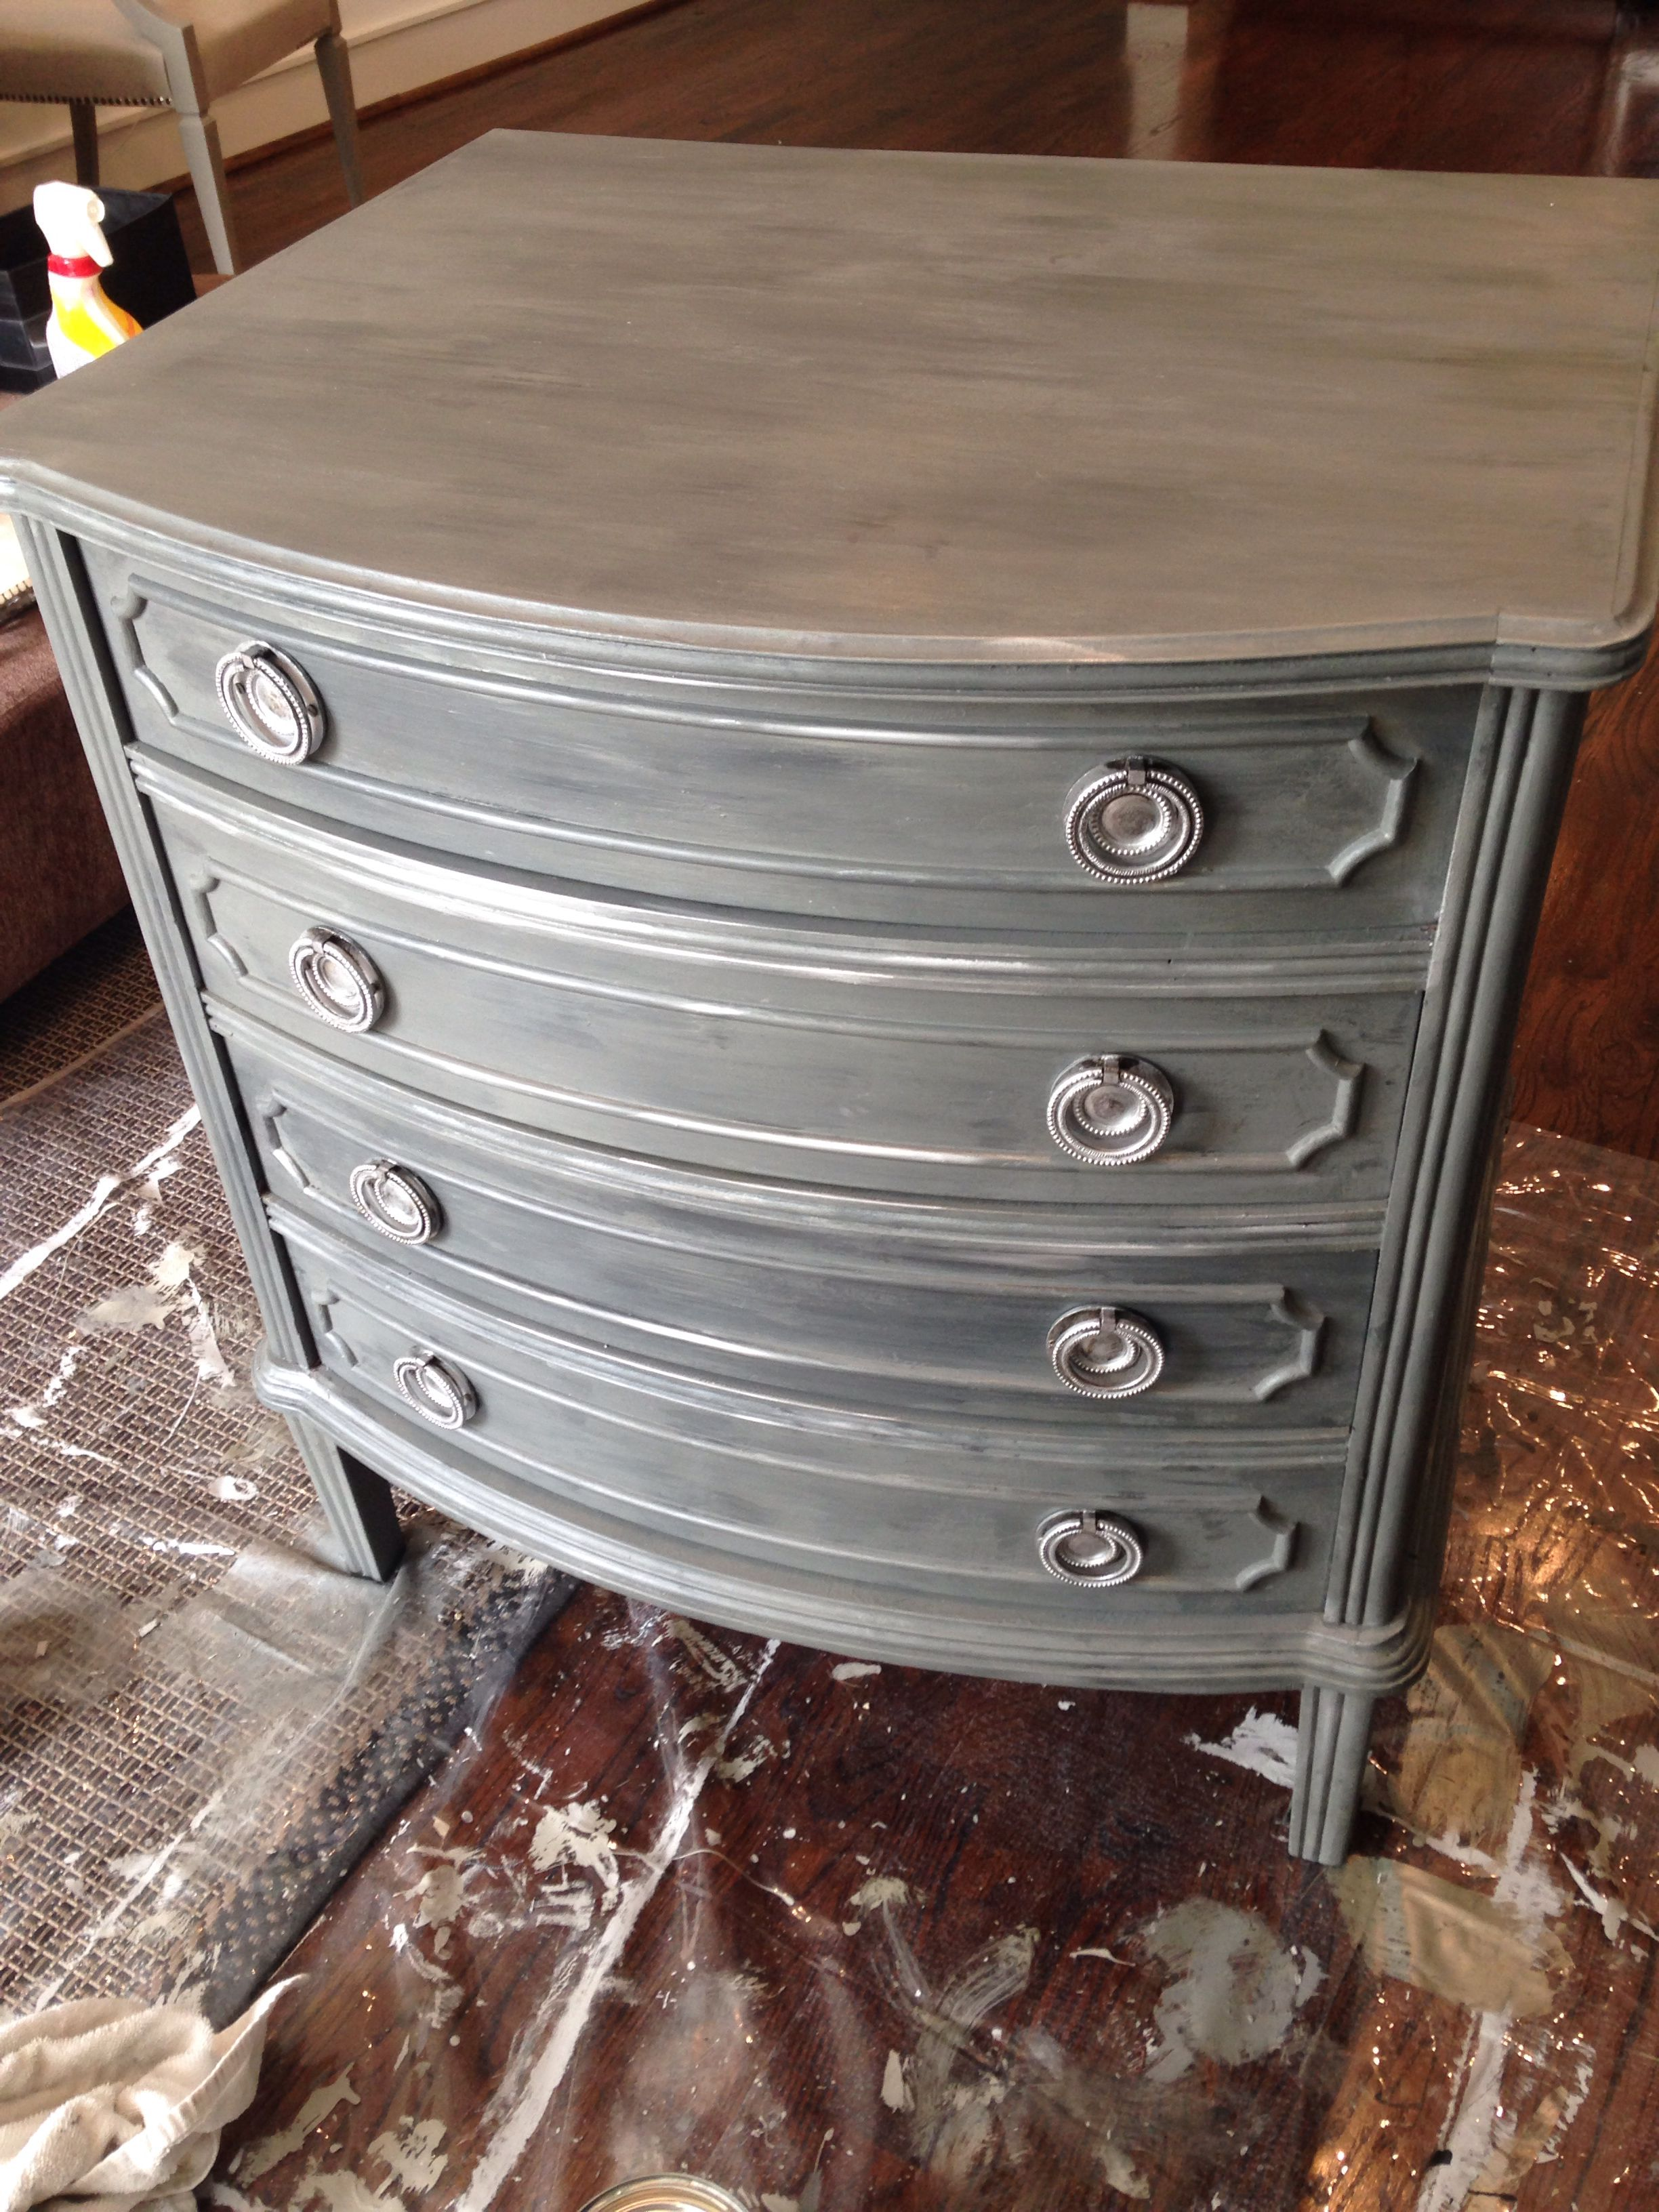 Zinc Finish   Restoration Hardware Style Made With Annie Sloan Chalk Paint  (Graphite And French